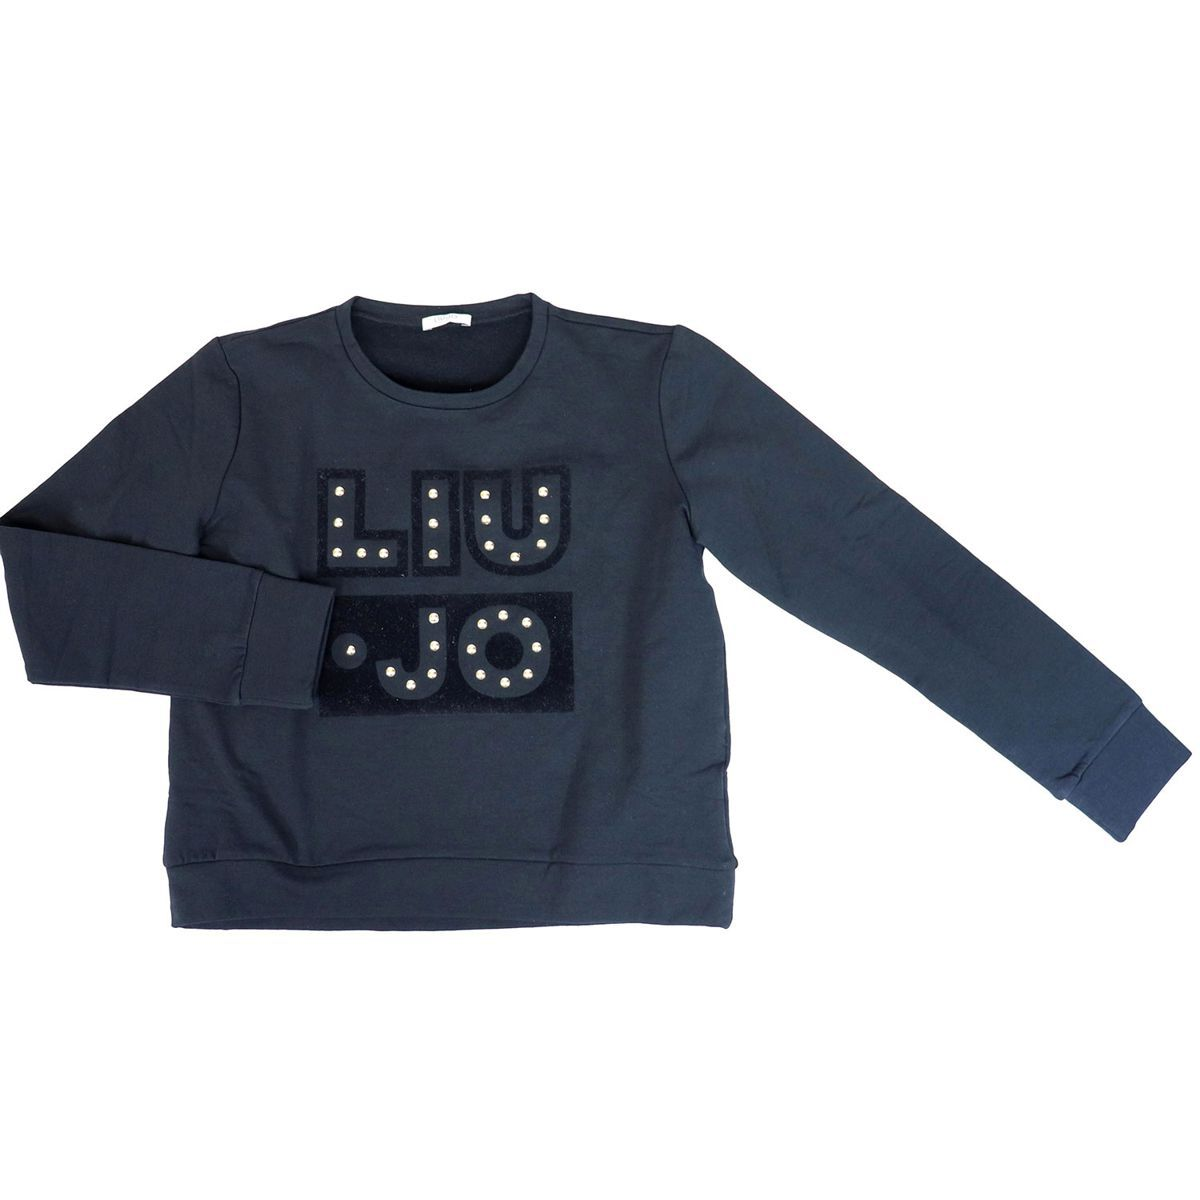 Crewneck sweatshirt with logo and applications Black Liu Jo